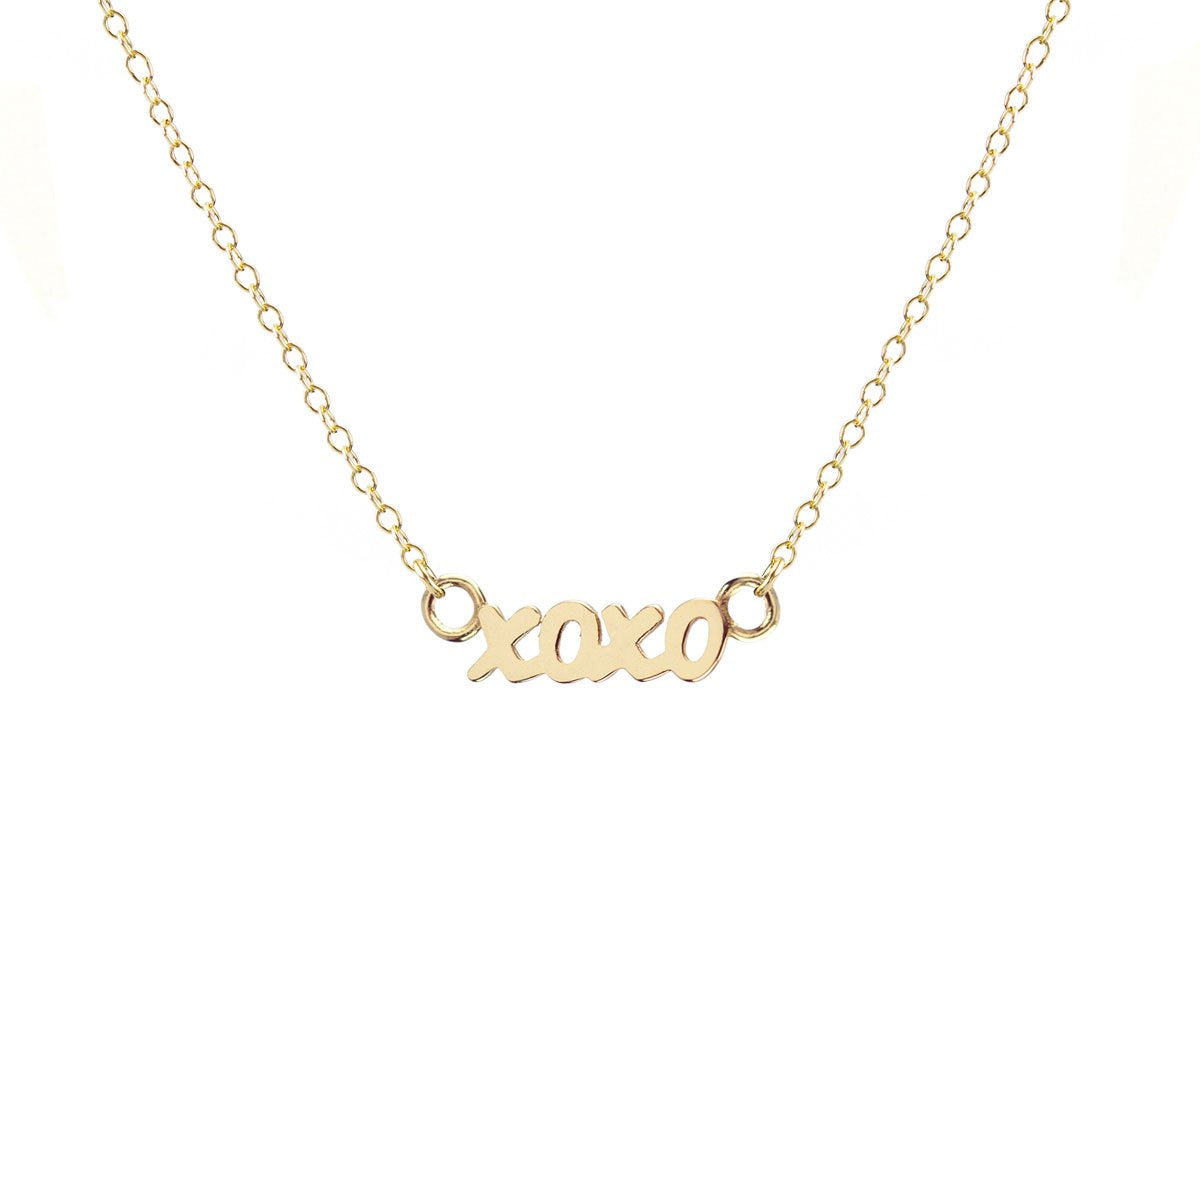 KRIS NATIONS - XOXO CHARM NECKLACE IN 18K GOLD